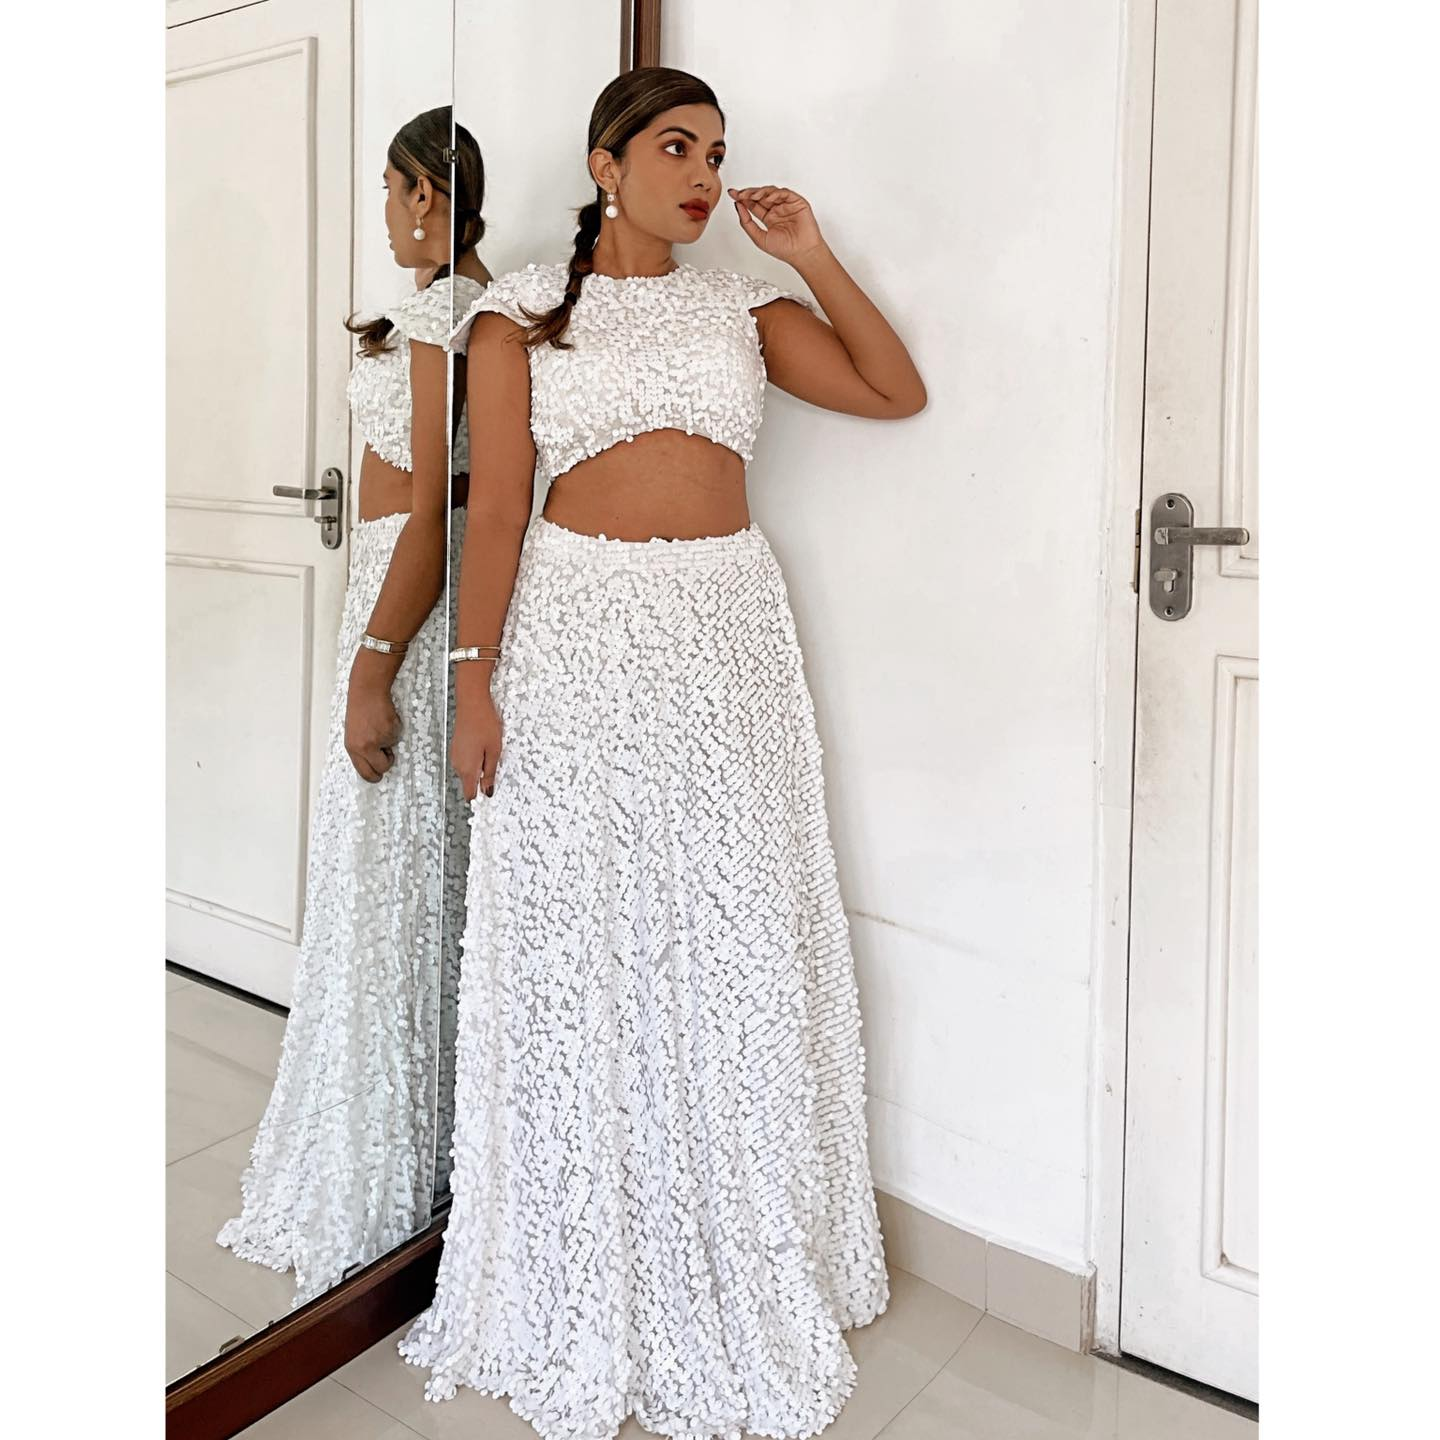 Full white matte sequin lehenga in S/M sizing. 34 inch bust and 30 inch waist.   STRICTLY ONE ONLY and no repeats.   Blouse is a beautiful cap sleeve design and the skirt has a fitted waist band. Blouse is fully padded.  2021-05-18